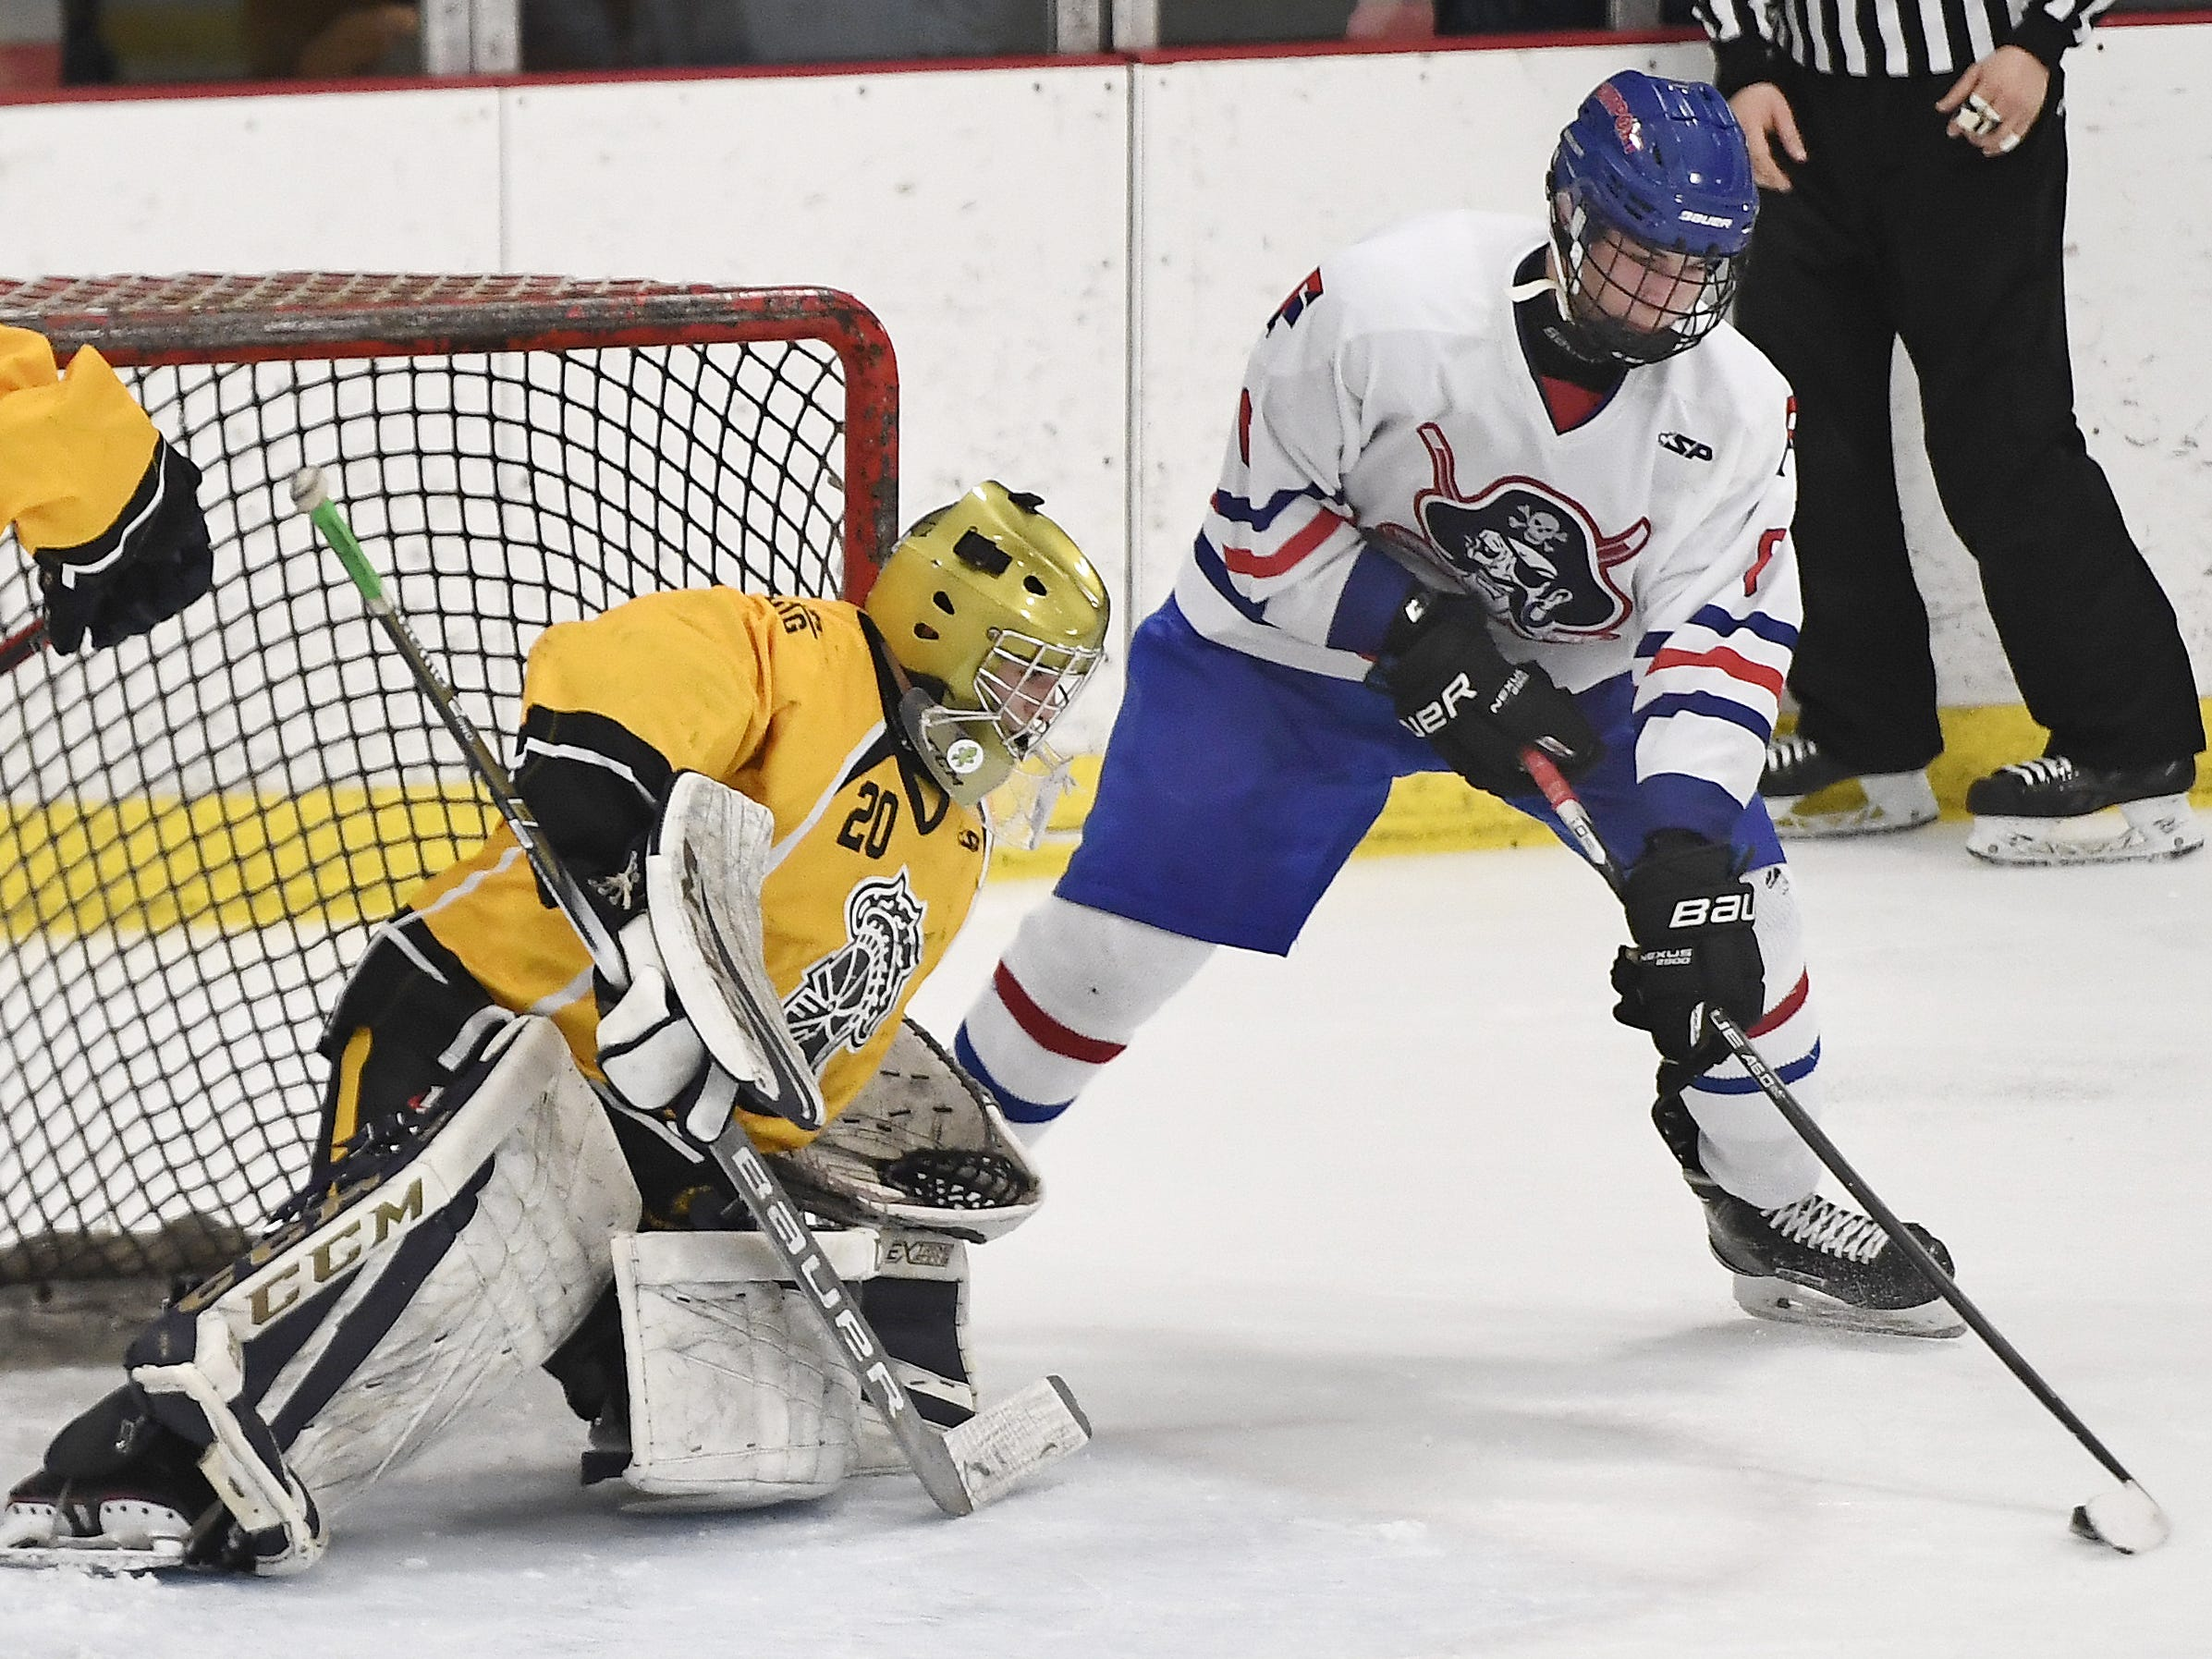 McQuaid goalie David Battisti, left, blocks a shot by Fairport's Hunter McDonald during the second period of a regular season game played at the Rochester Ice Center, Wednesday, Feb. 6, 2019. McQuaid beat Fairport 5-4 in overtime.